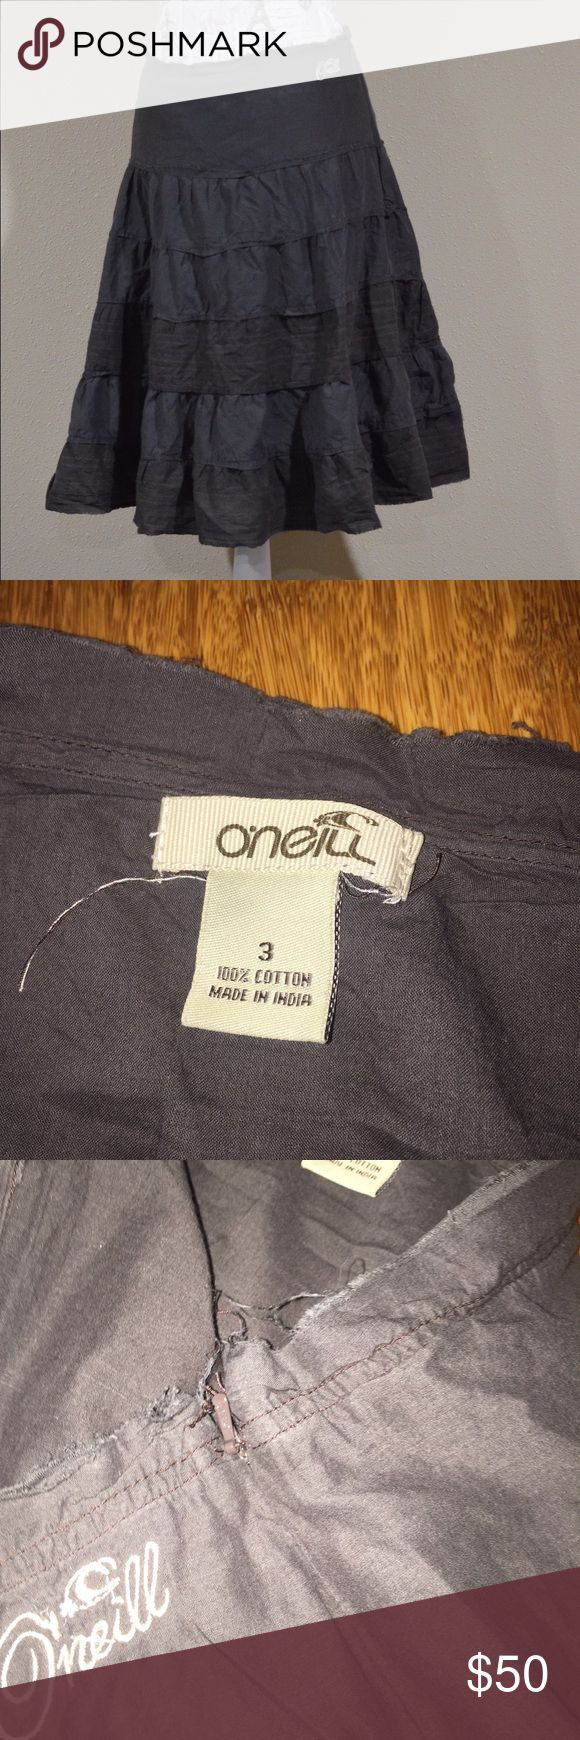 """O'Neil Charcoal and brown Skirt Waist 15"""" flat across. Length 23"""" from waist to hem. Style intentionally has an unfinished look. Skirt is lined, has hidden zipper on side, and some natural volume. Majority of skirt is charcoal, rest is brown. 100% cotton. No sure I really want to part with this one but it will sell at the right price. EUC No rips or stains. 🐸Ask about custom bundles for better discount.🐸 O'Neill Skirts A-Line or Full"""